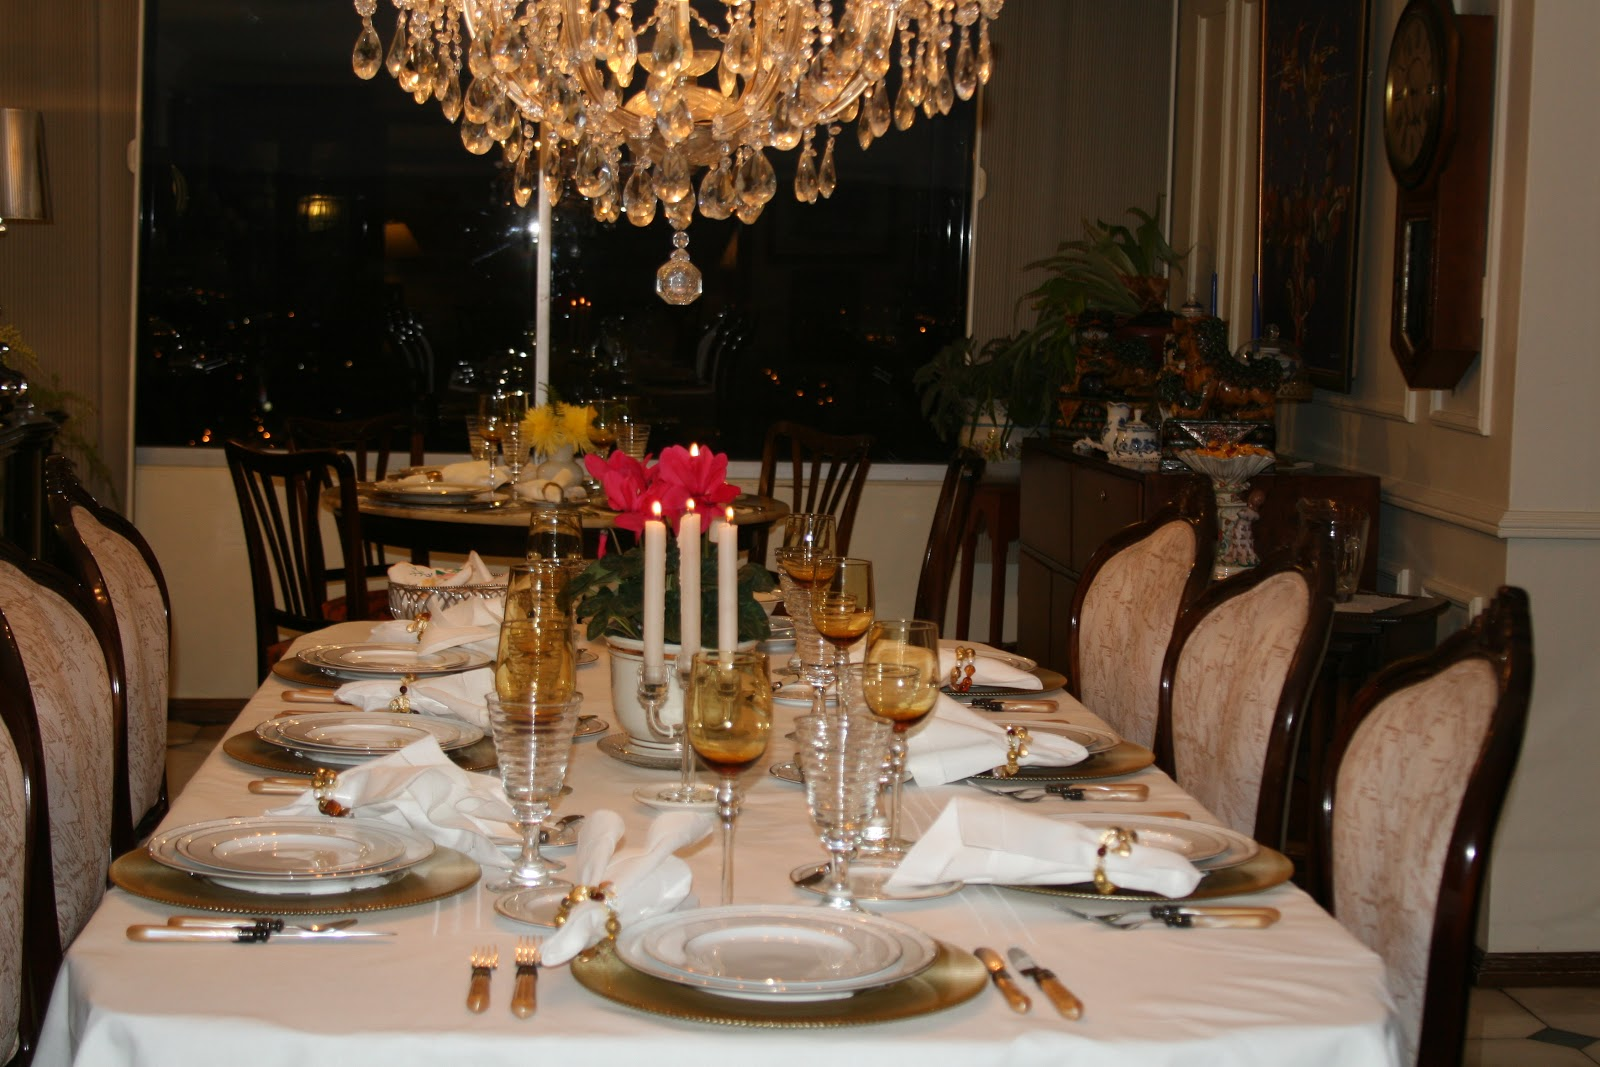 fabby 39 s living fabby table settings for a dinner party. Black Bedroom Furniture Sets. Home Design Ideas